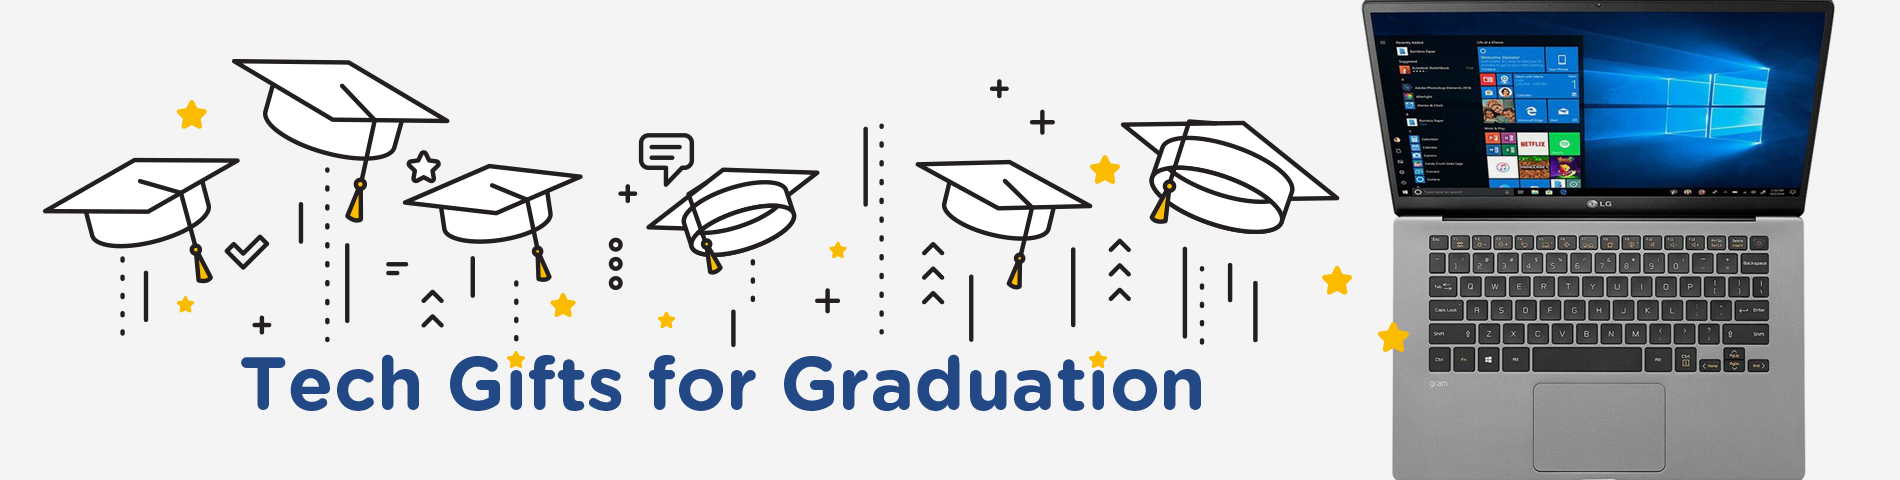 Tech Gifts for Graduation